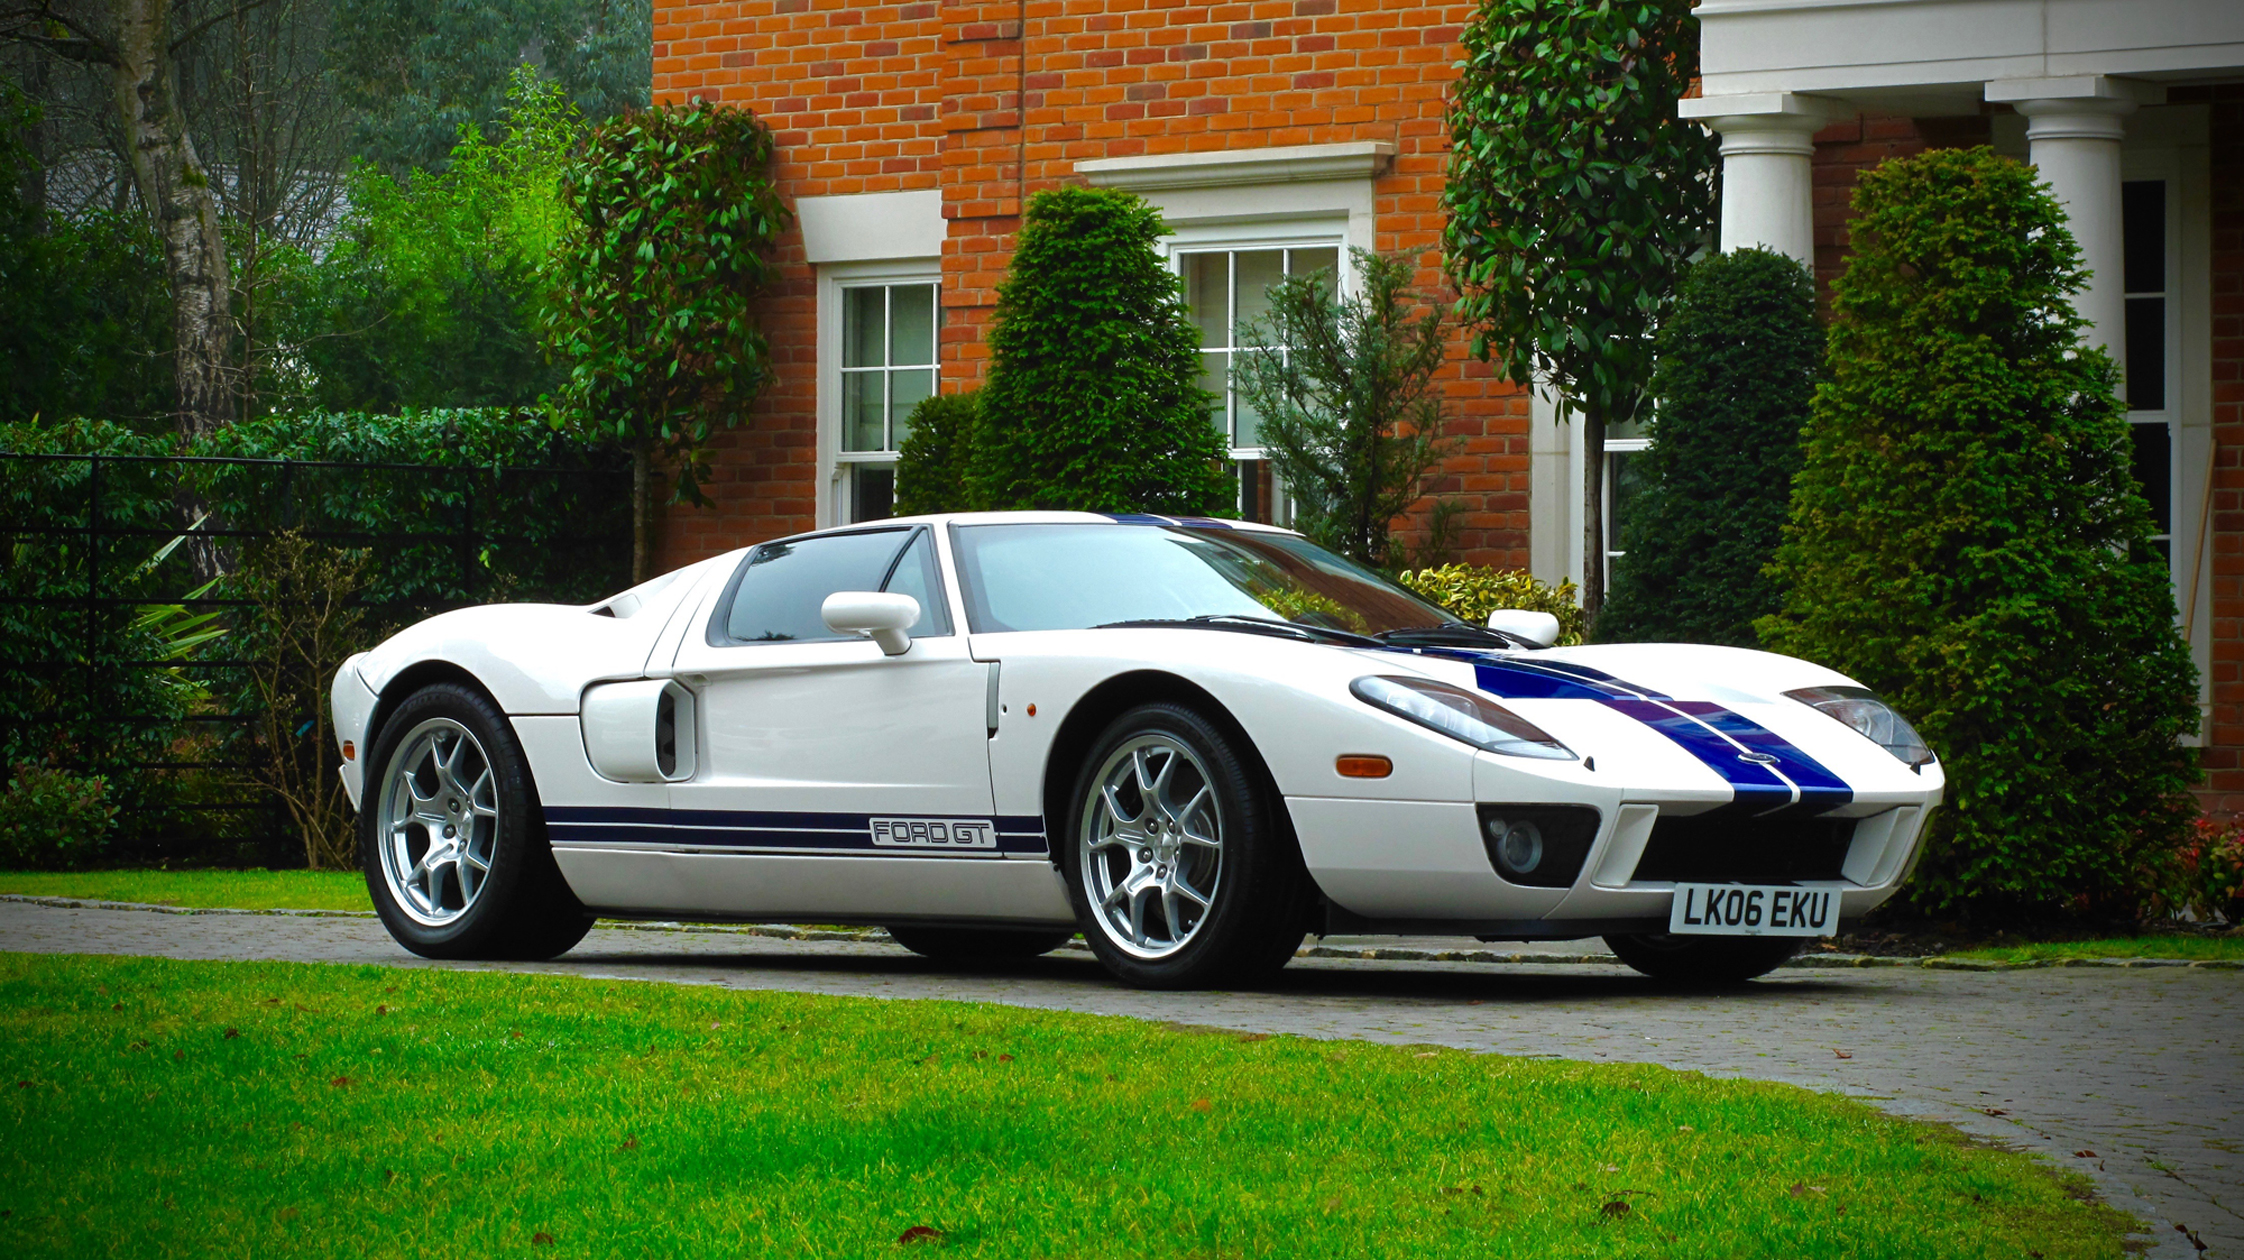 2005 ford gt first owned by jenson button heads to auction. Black Bedroom Furniture Sets. Home Design Ideas